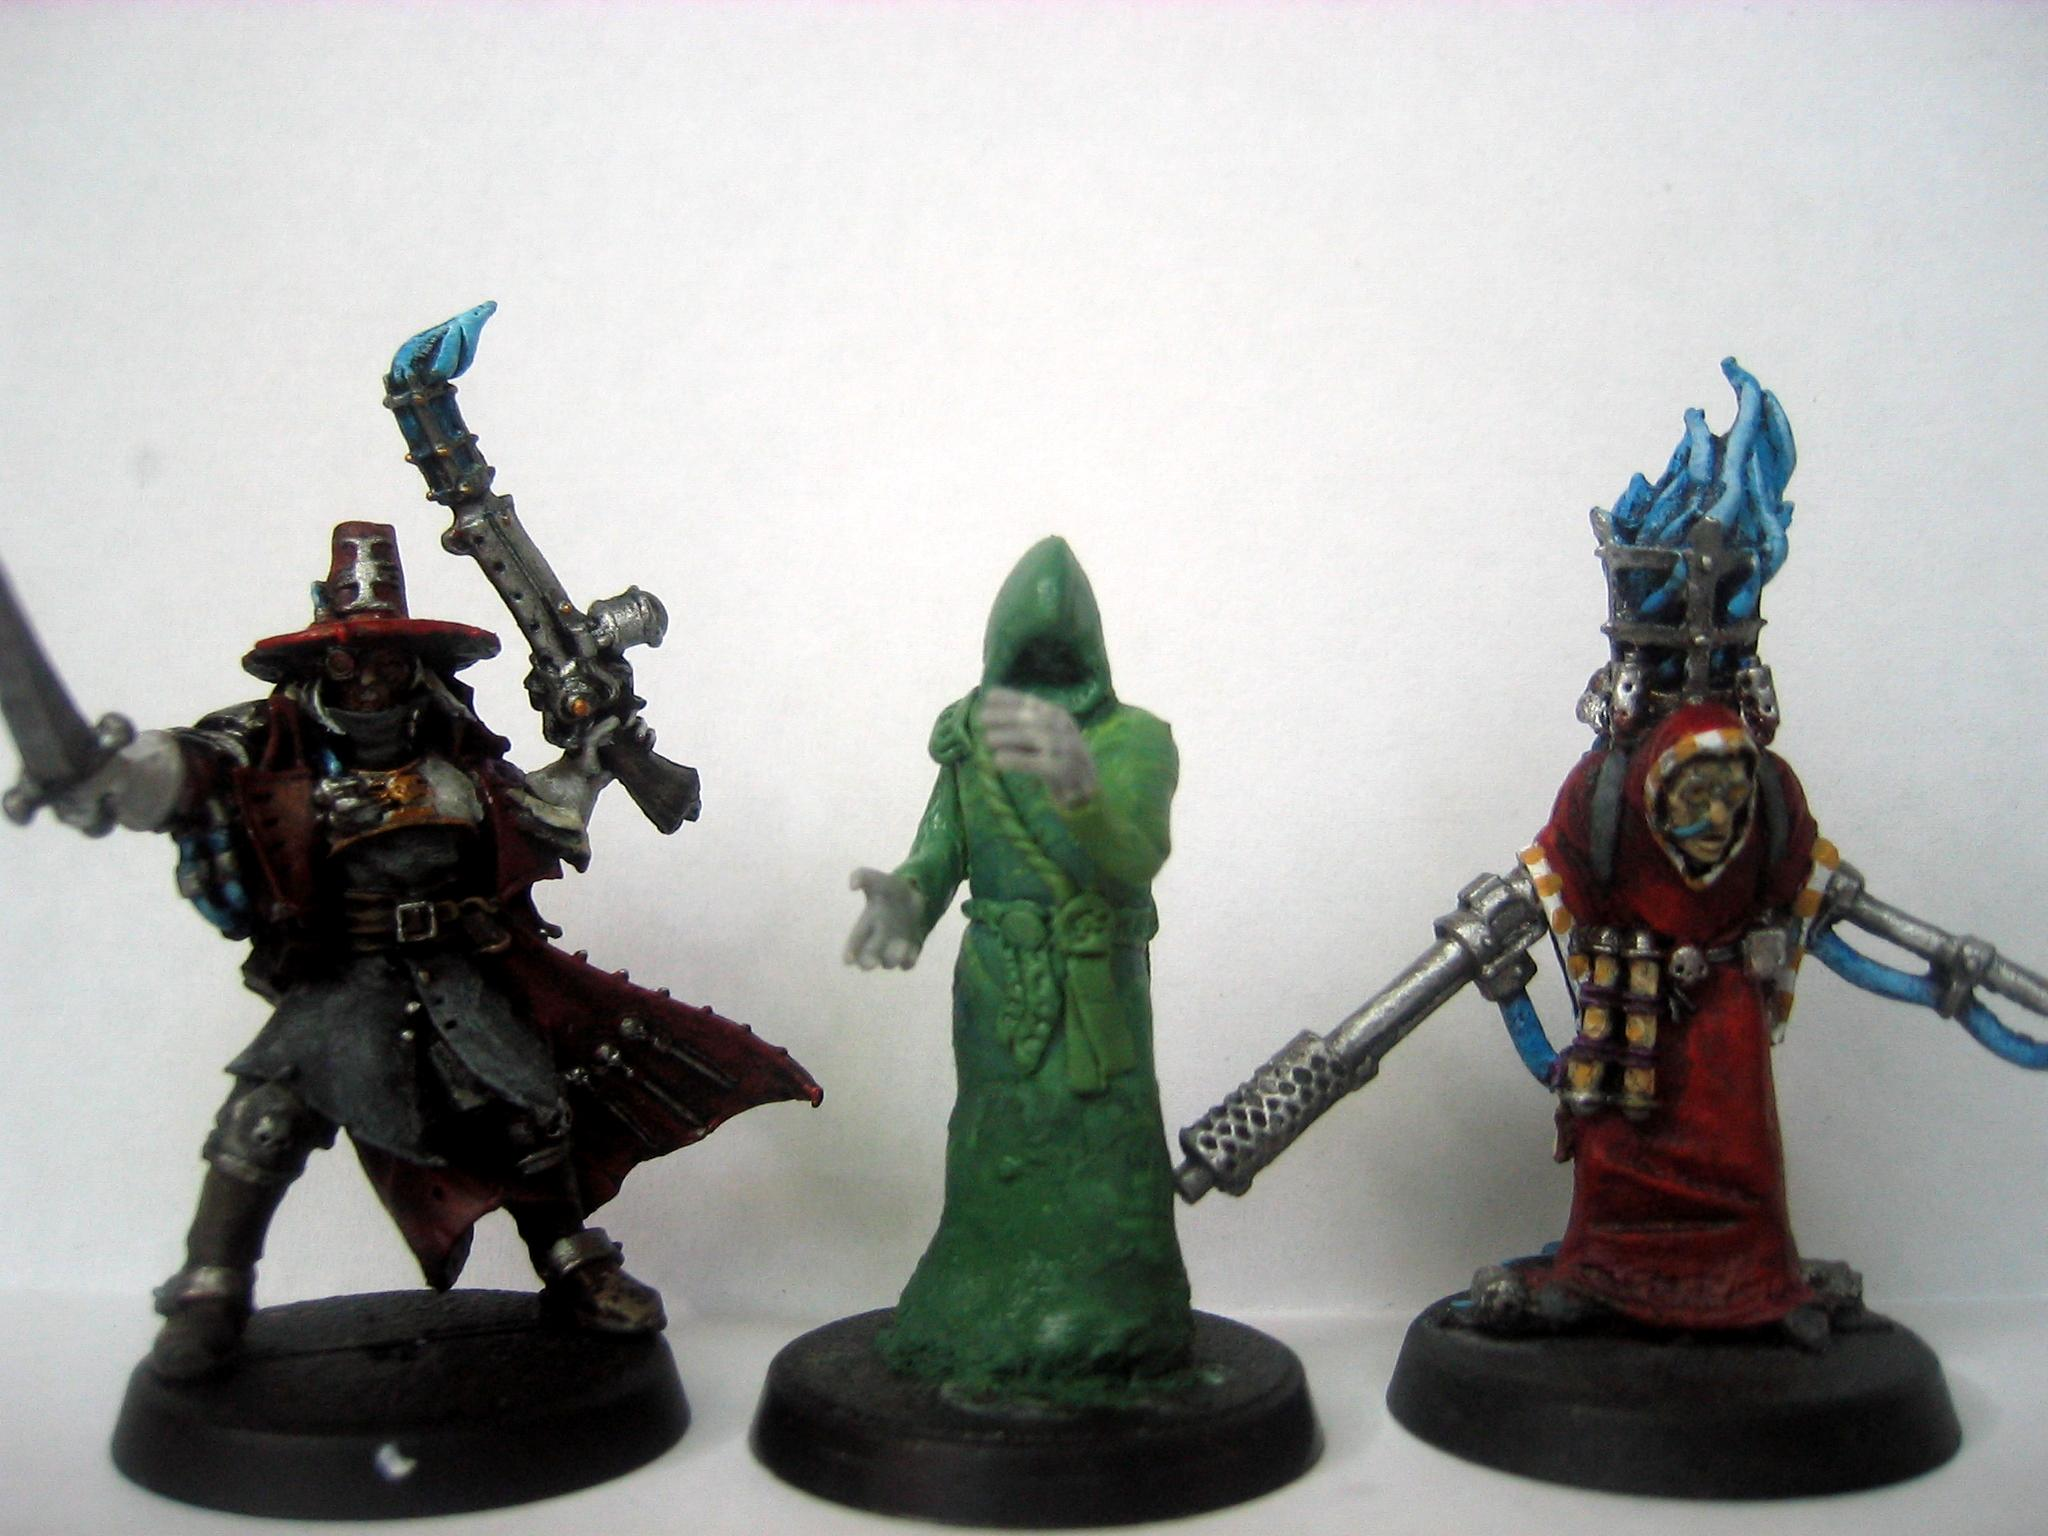 Acolytes, Greenstuff, Hooded, Inq28, Inquisitor, Witch Hunters, Work In Progress